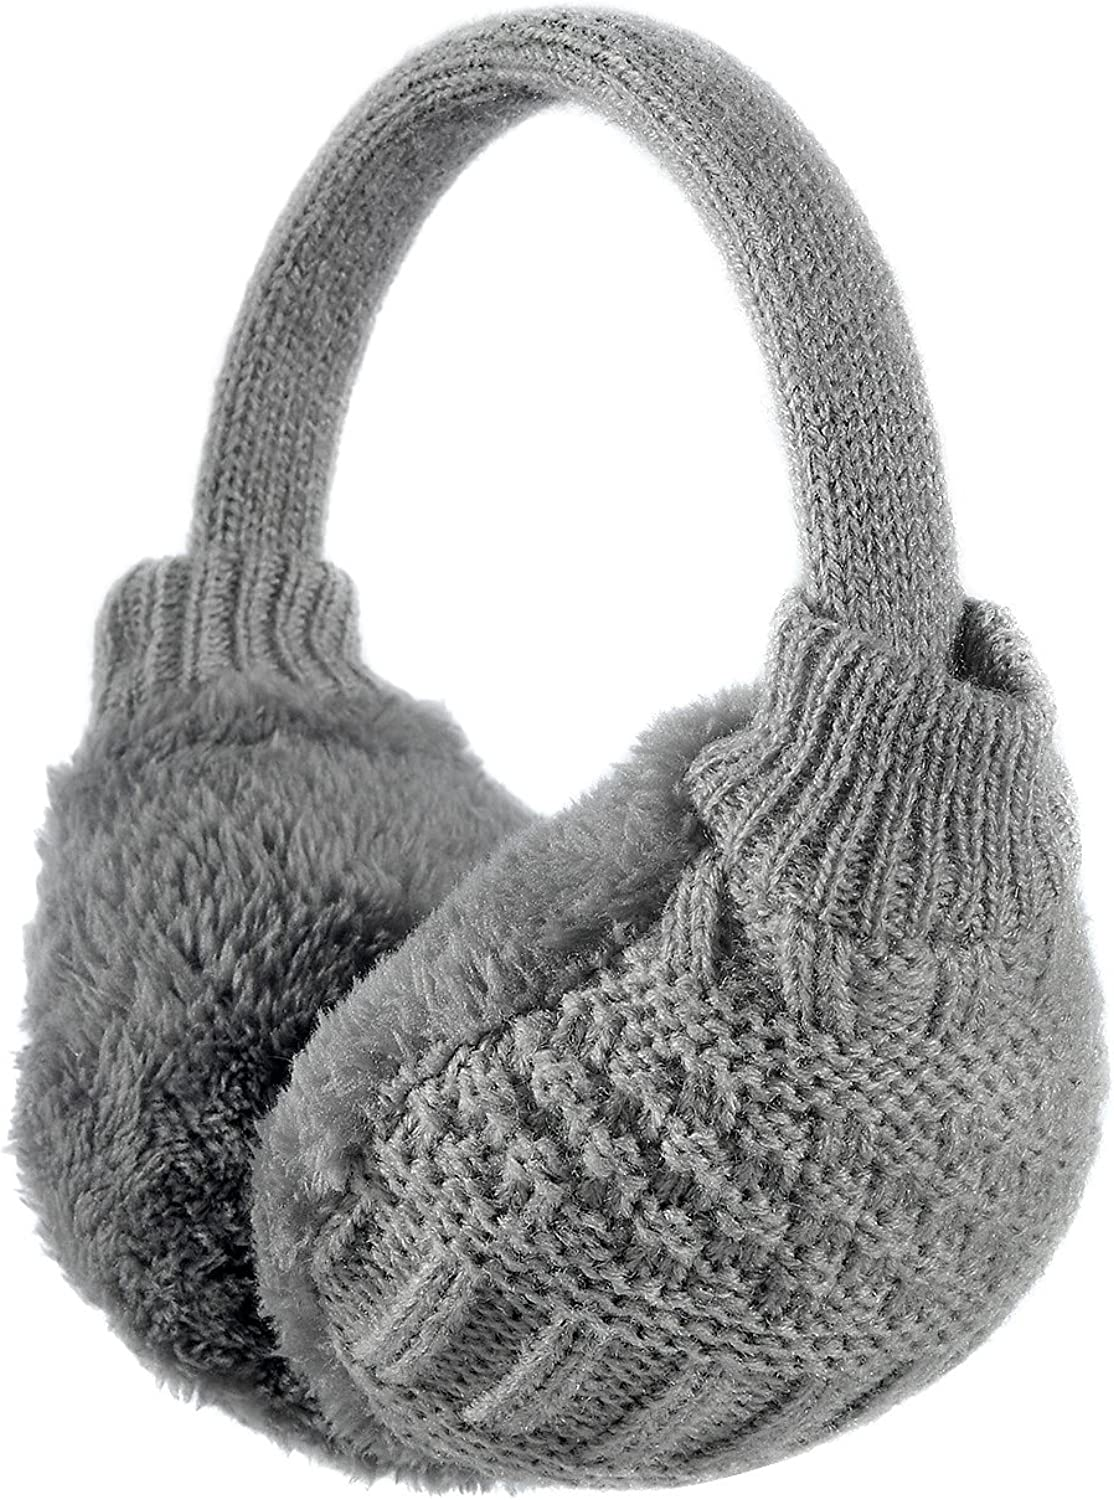 Sudawave Womens Winter Adjustable Knitted Ear Muffs With Faux Furry Outdoor Ear warmers